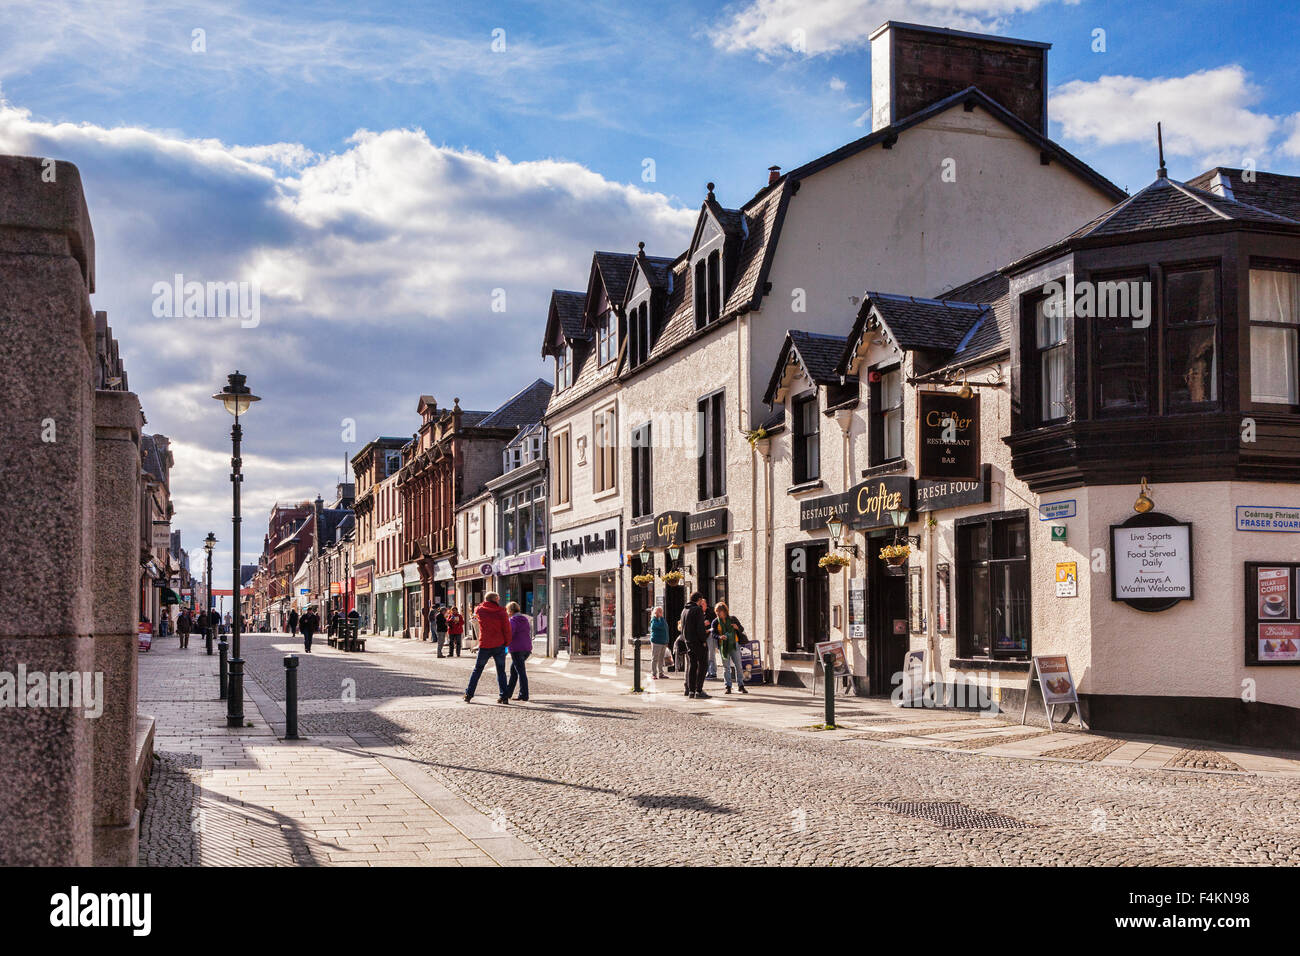 Shoppers and tourists in the High Street, Fort William, Highland, Scotland, UK Stock Photo